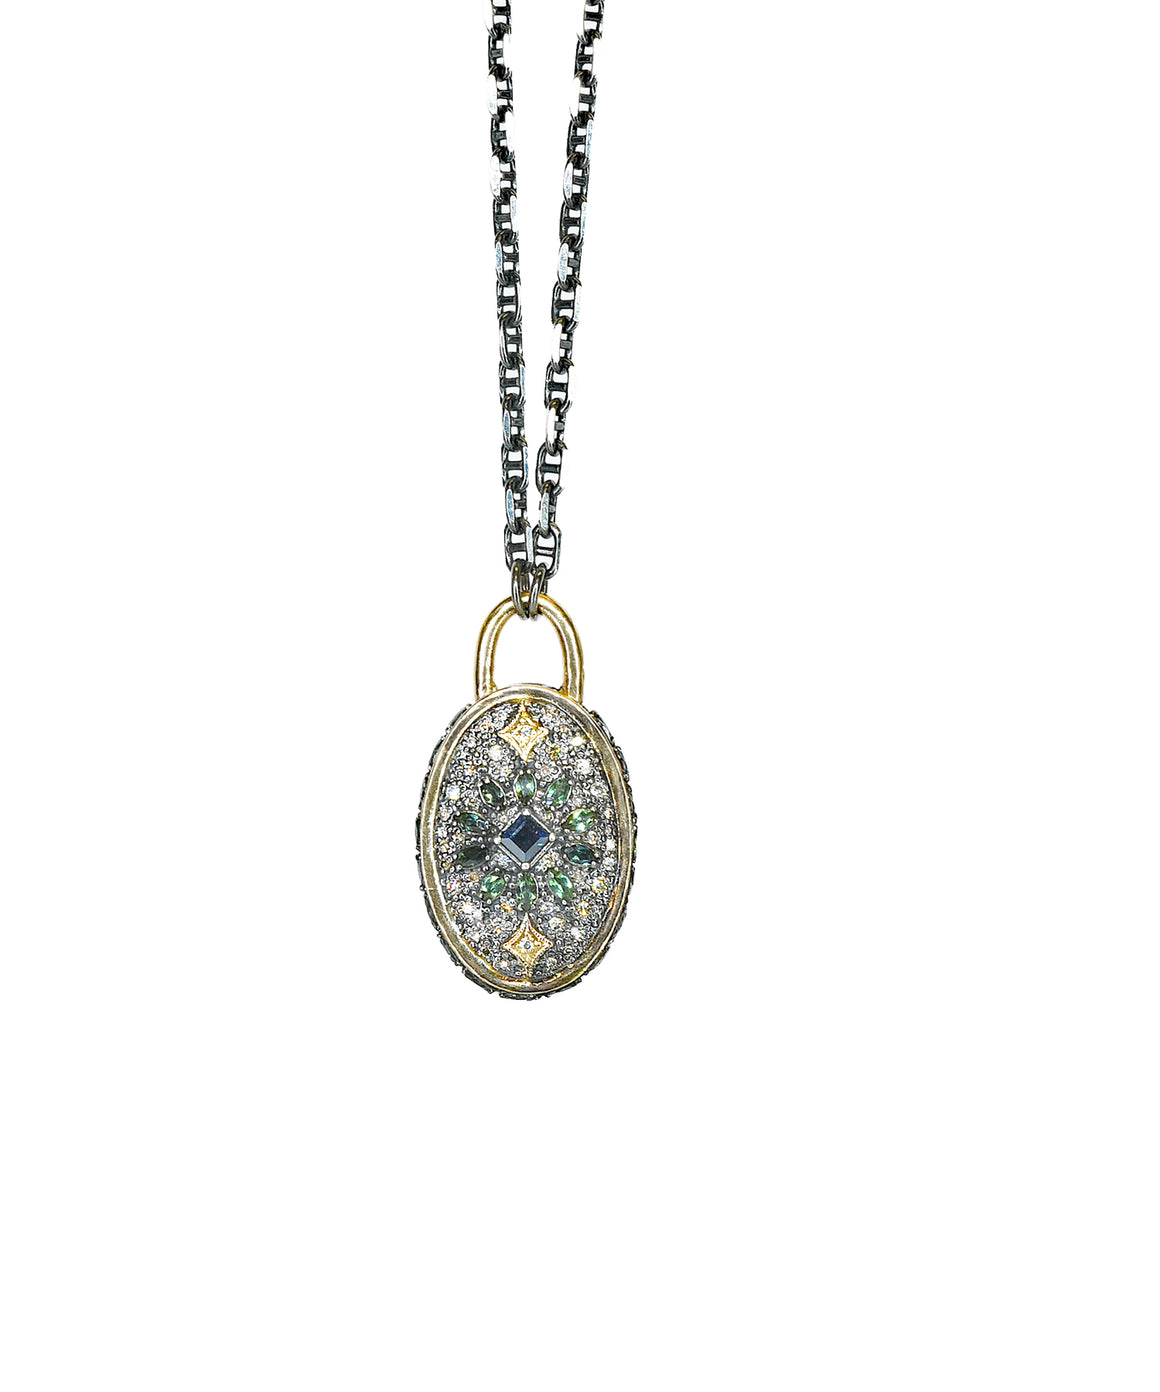 Oval Cuento necklace